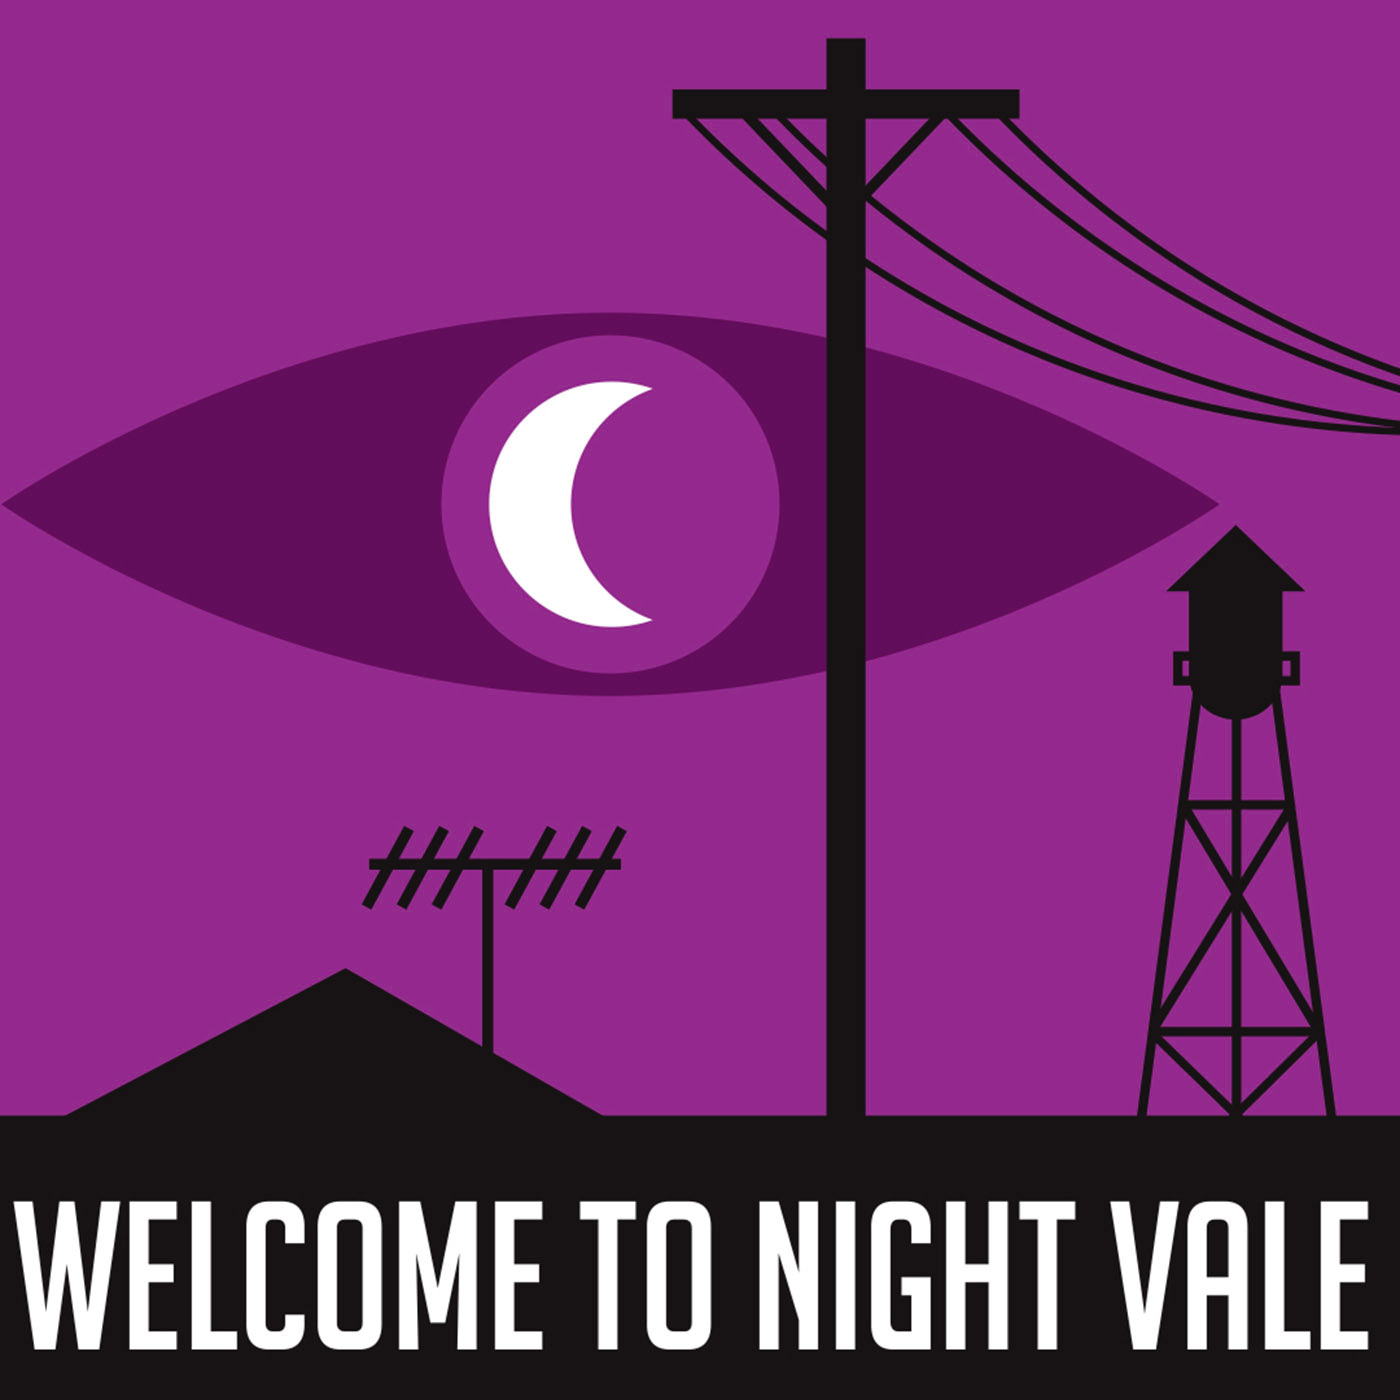 Bonus - An excerpt from the next Night Vale novel!